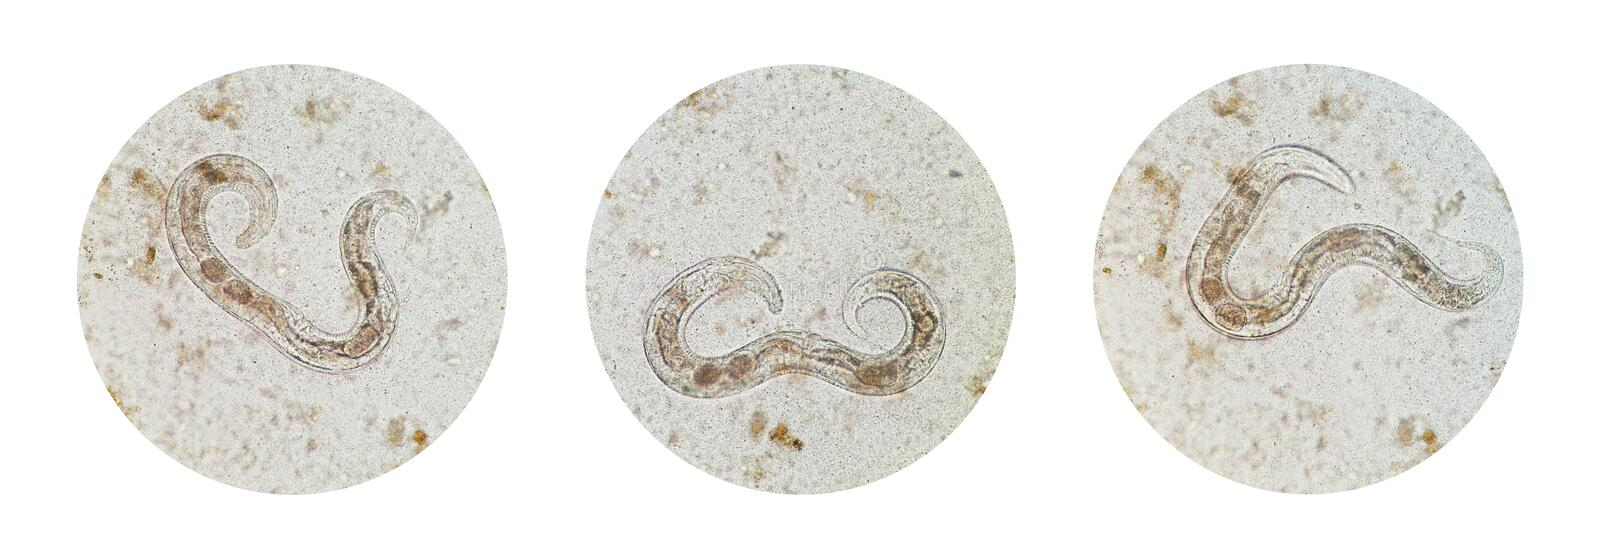 Microscopic view collection of adult free-living female Strongyloides stercoralis, a human pathogenic parasitic roundworm causing. The disease strongyloidiasis stock images